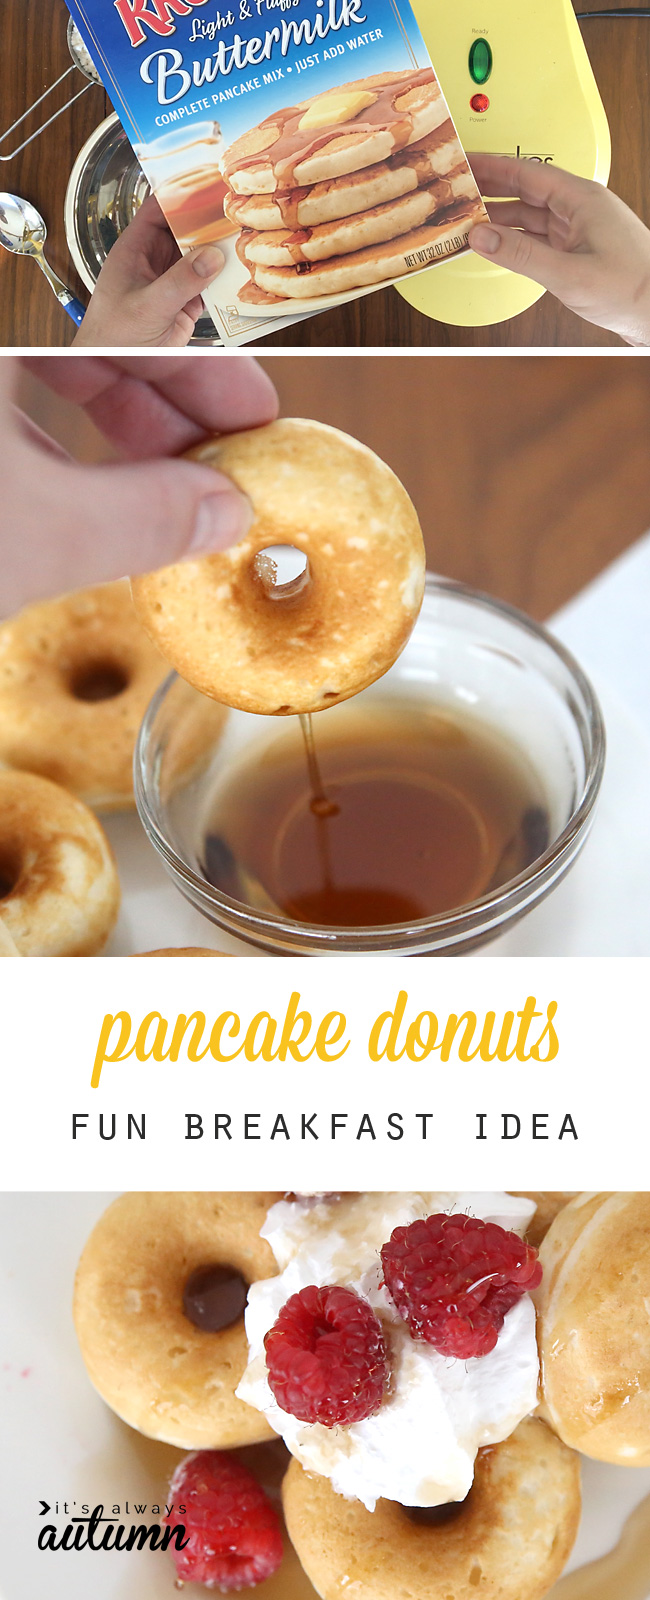 Pancake mix and donut maker; pancake donuts with syrup